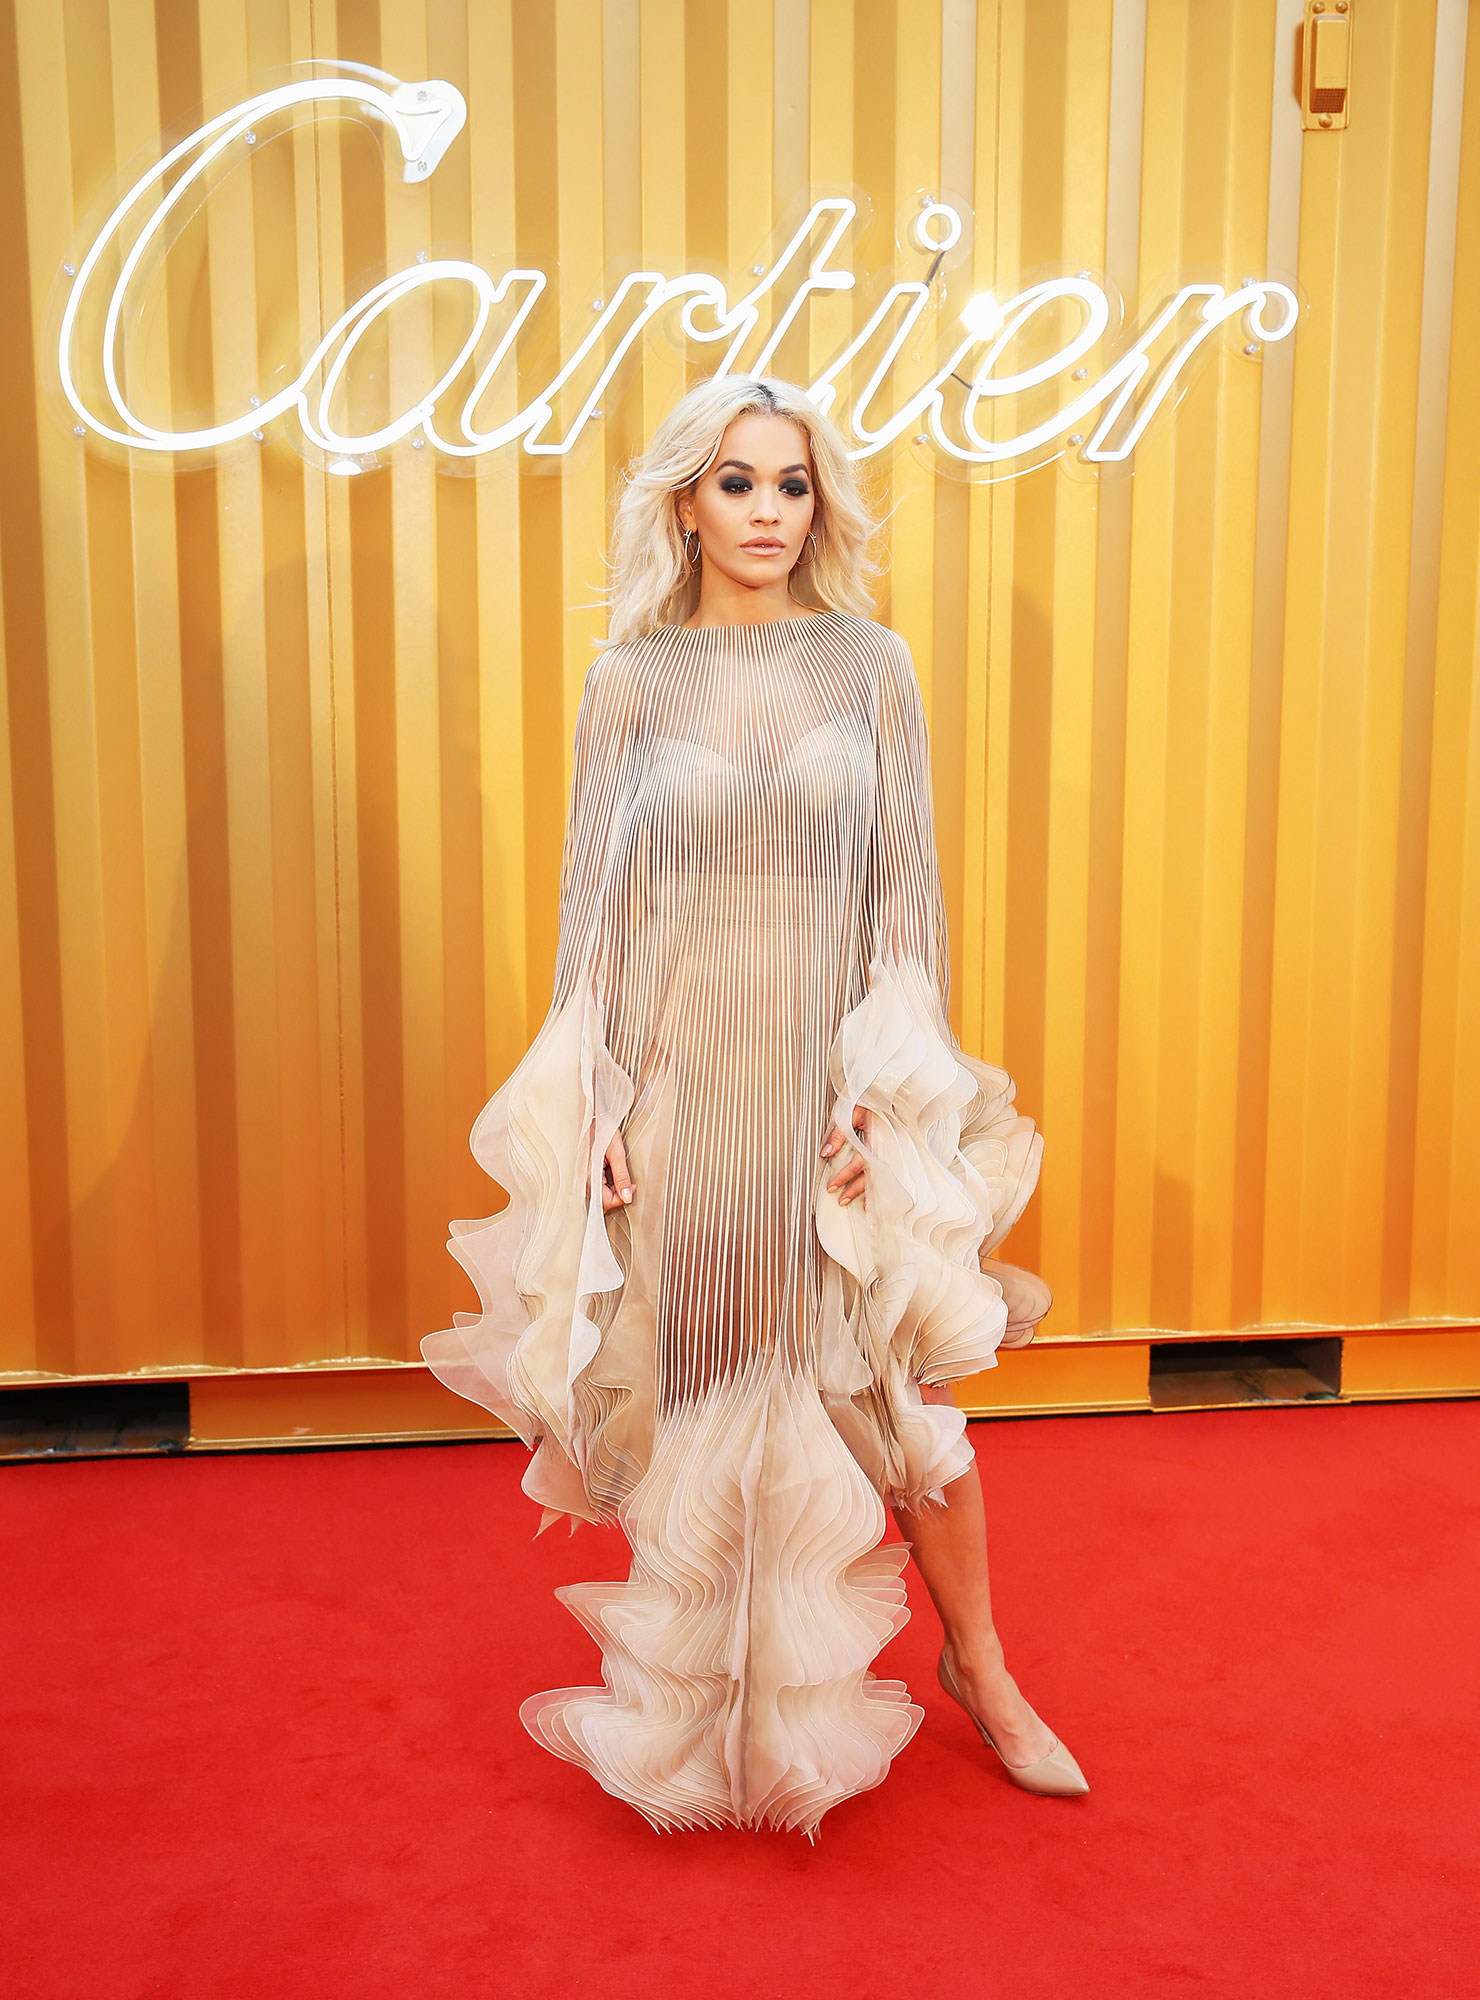 Iris van Herpen Rita Ora - In hundreds of layers of dyed nude organza on Nov. 29.